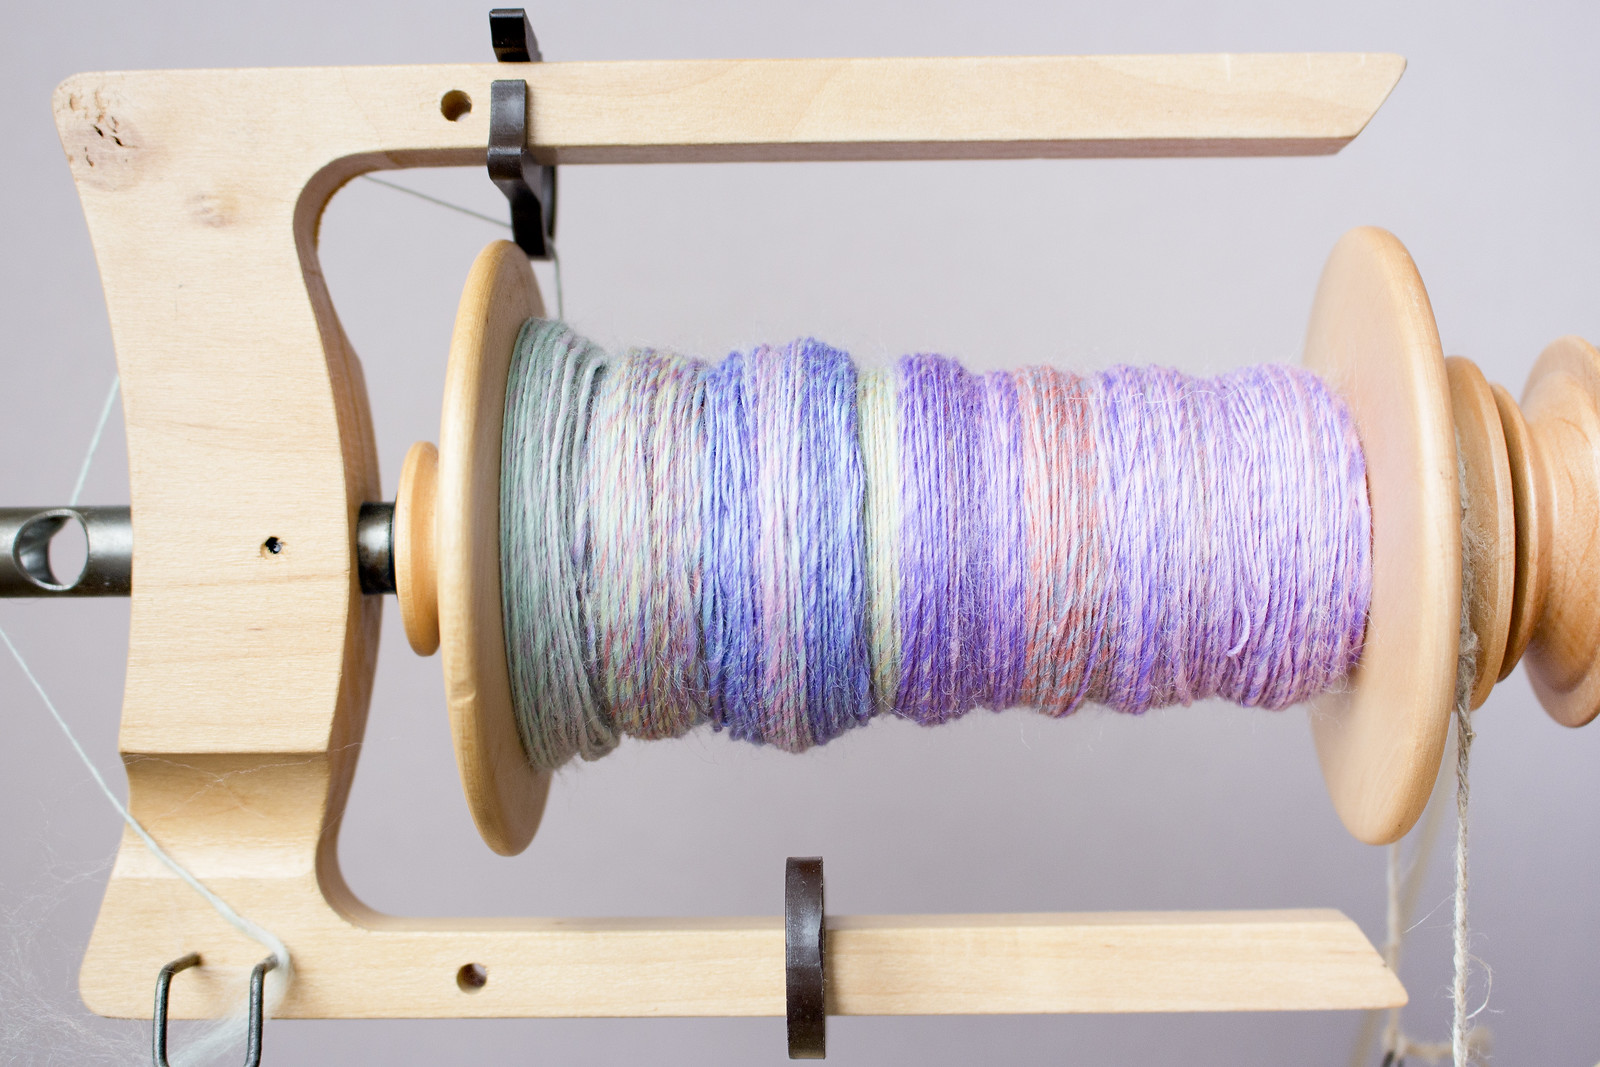 spinning pastel fibre on the spinning wheel bobbon